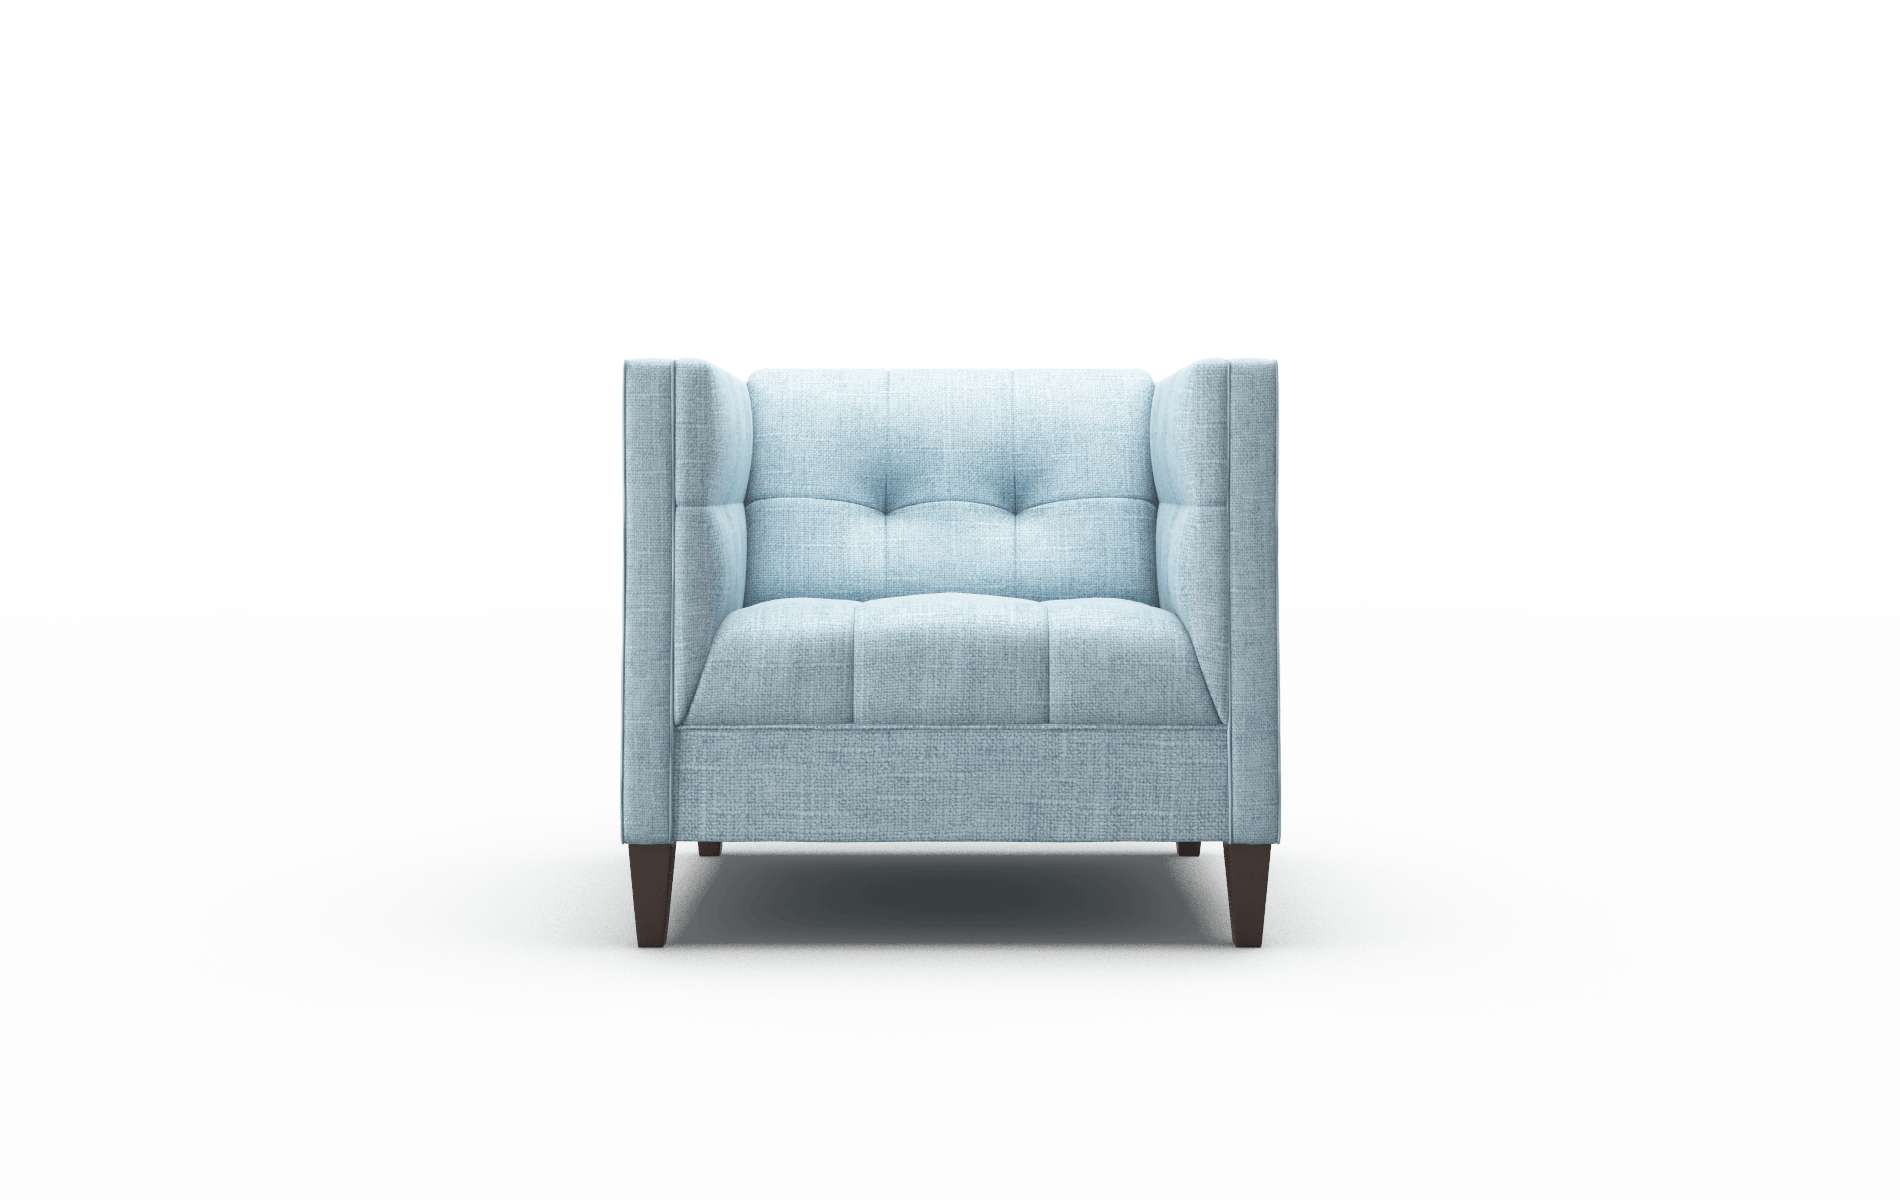 Messina Atlas Turquoise Chair espresso legs 1